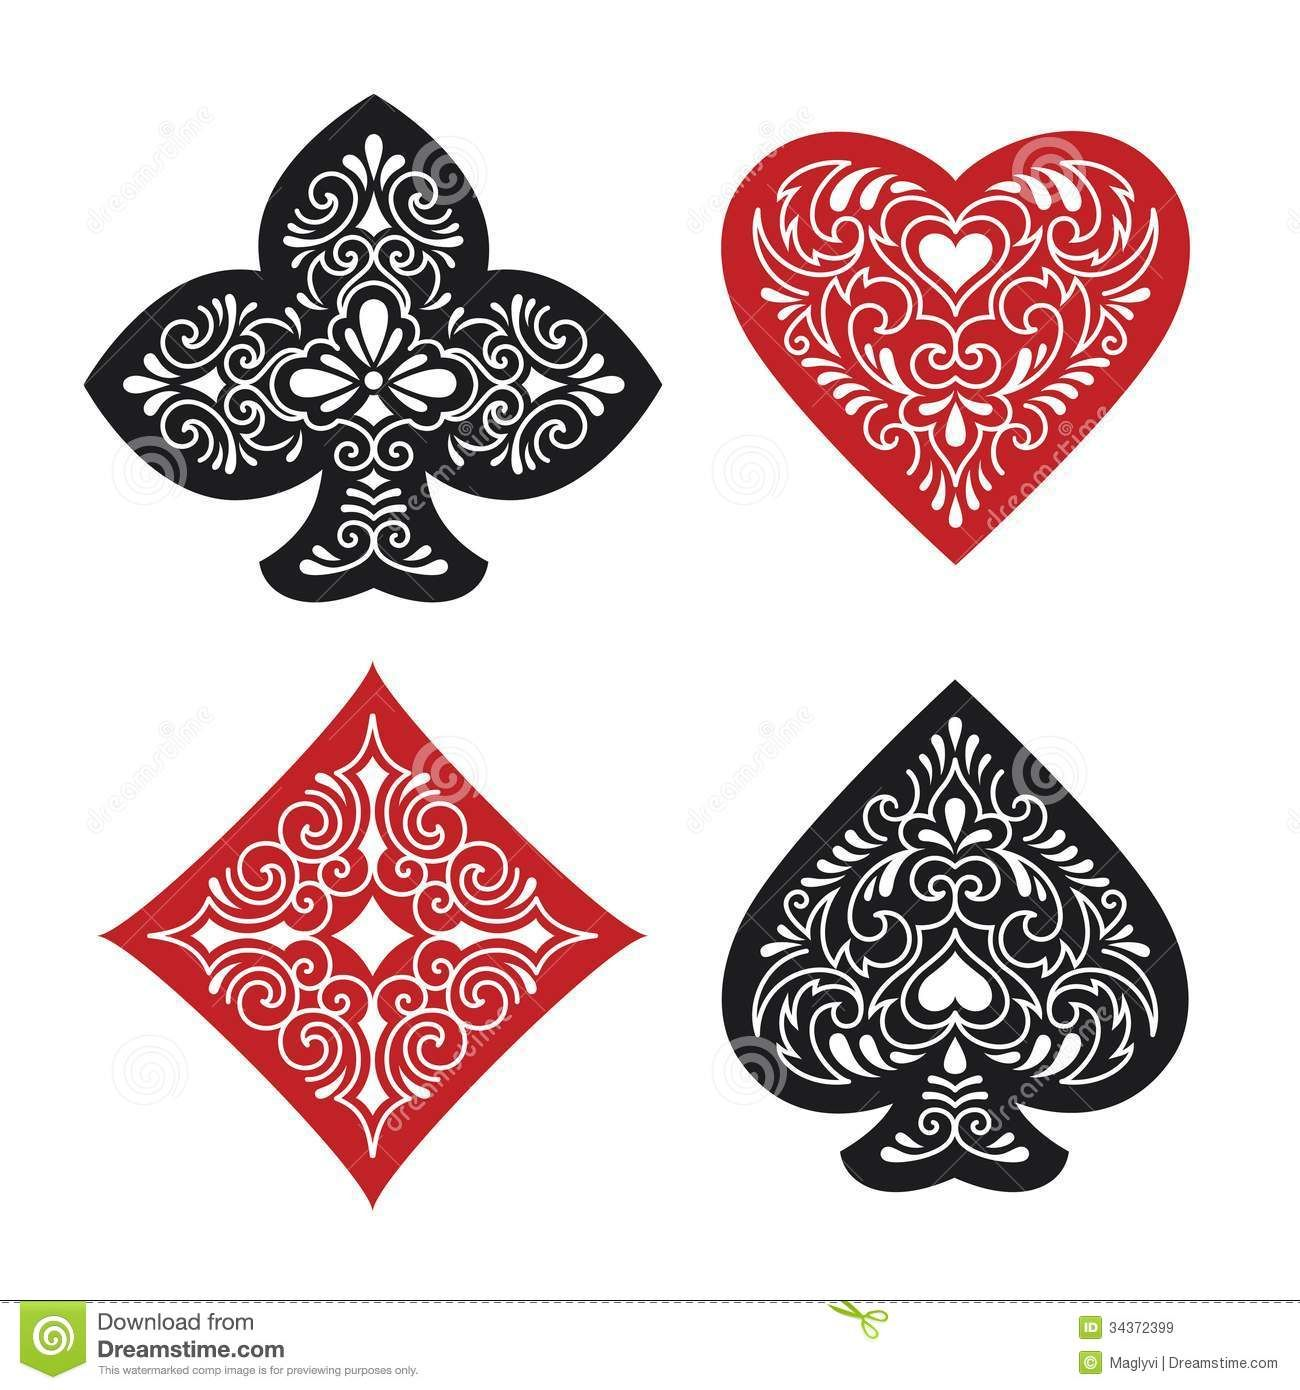 Illustration about Vector illustration of four ornate card